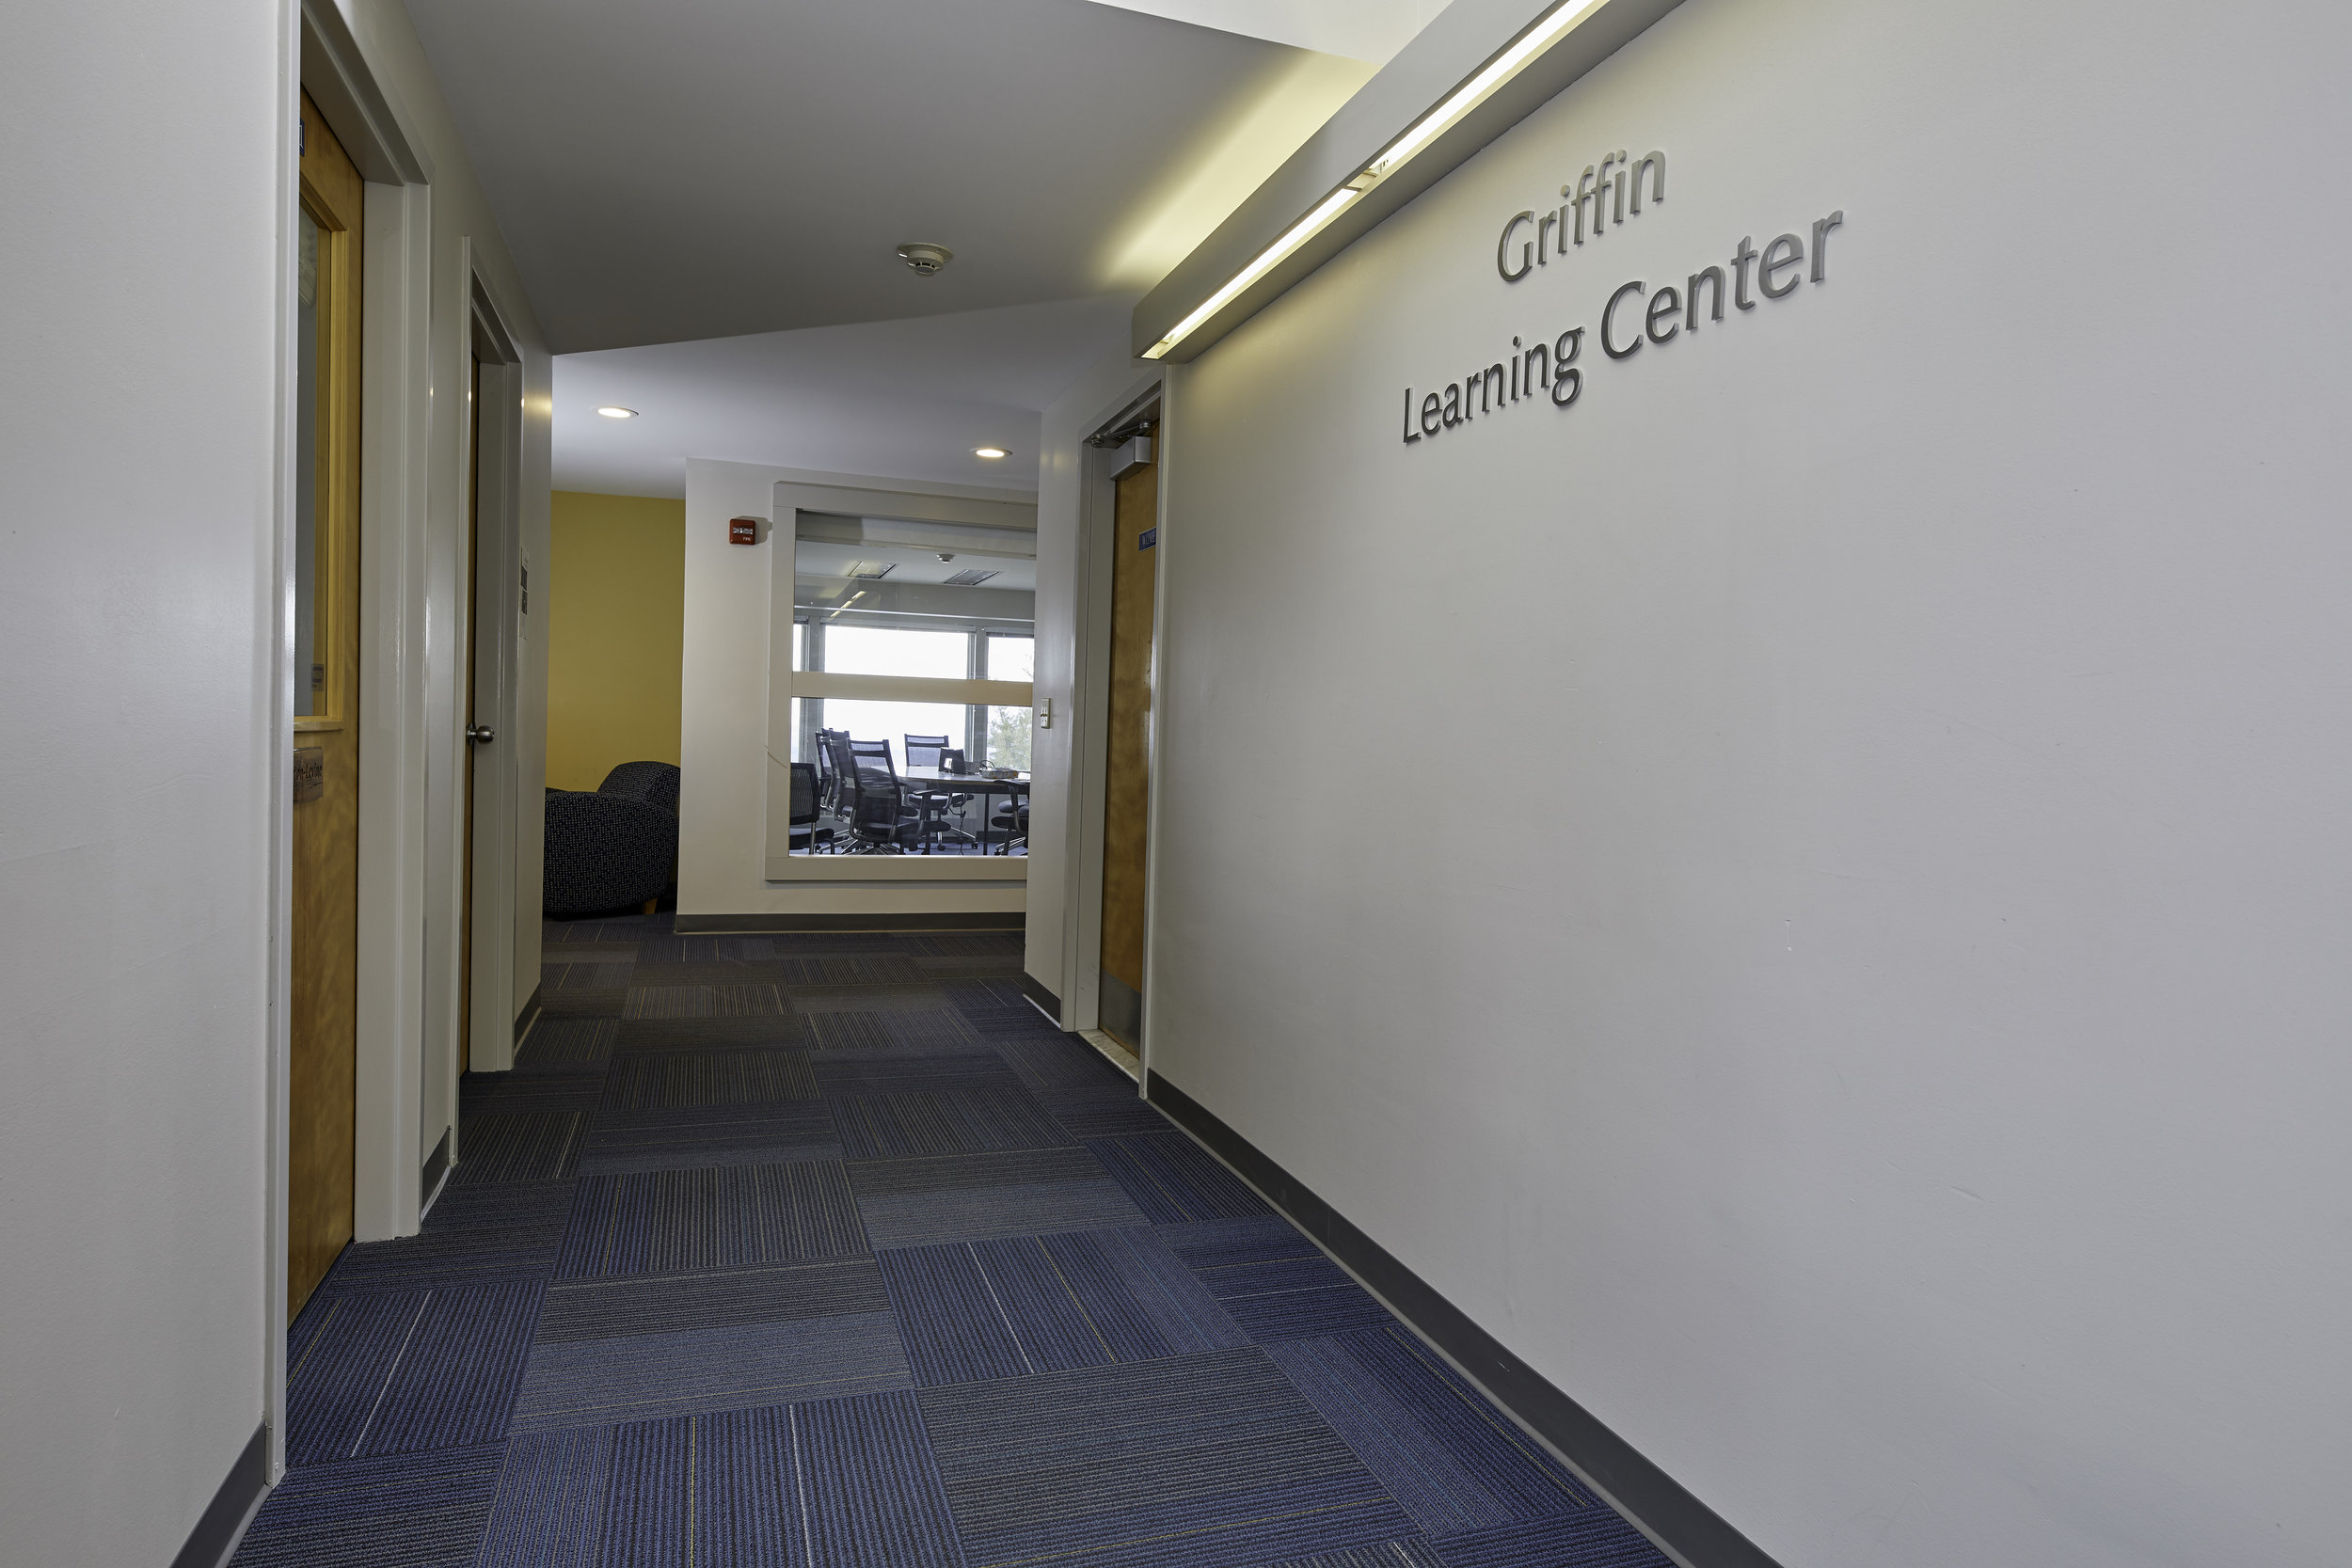 Griffin Learning Center